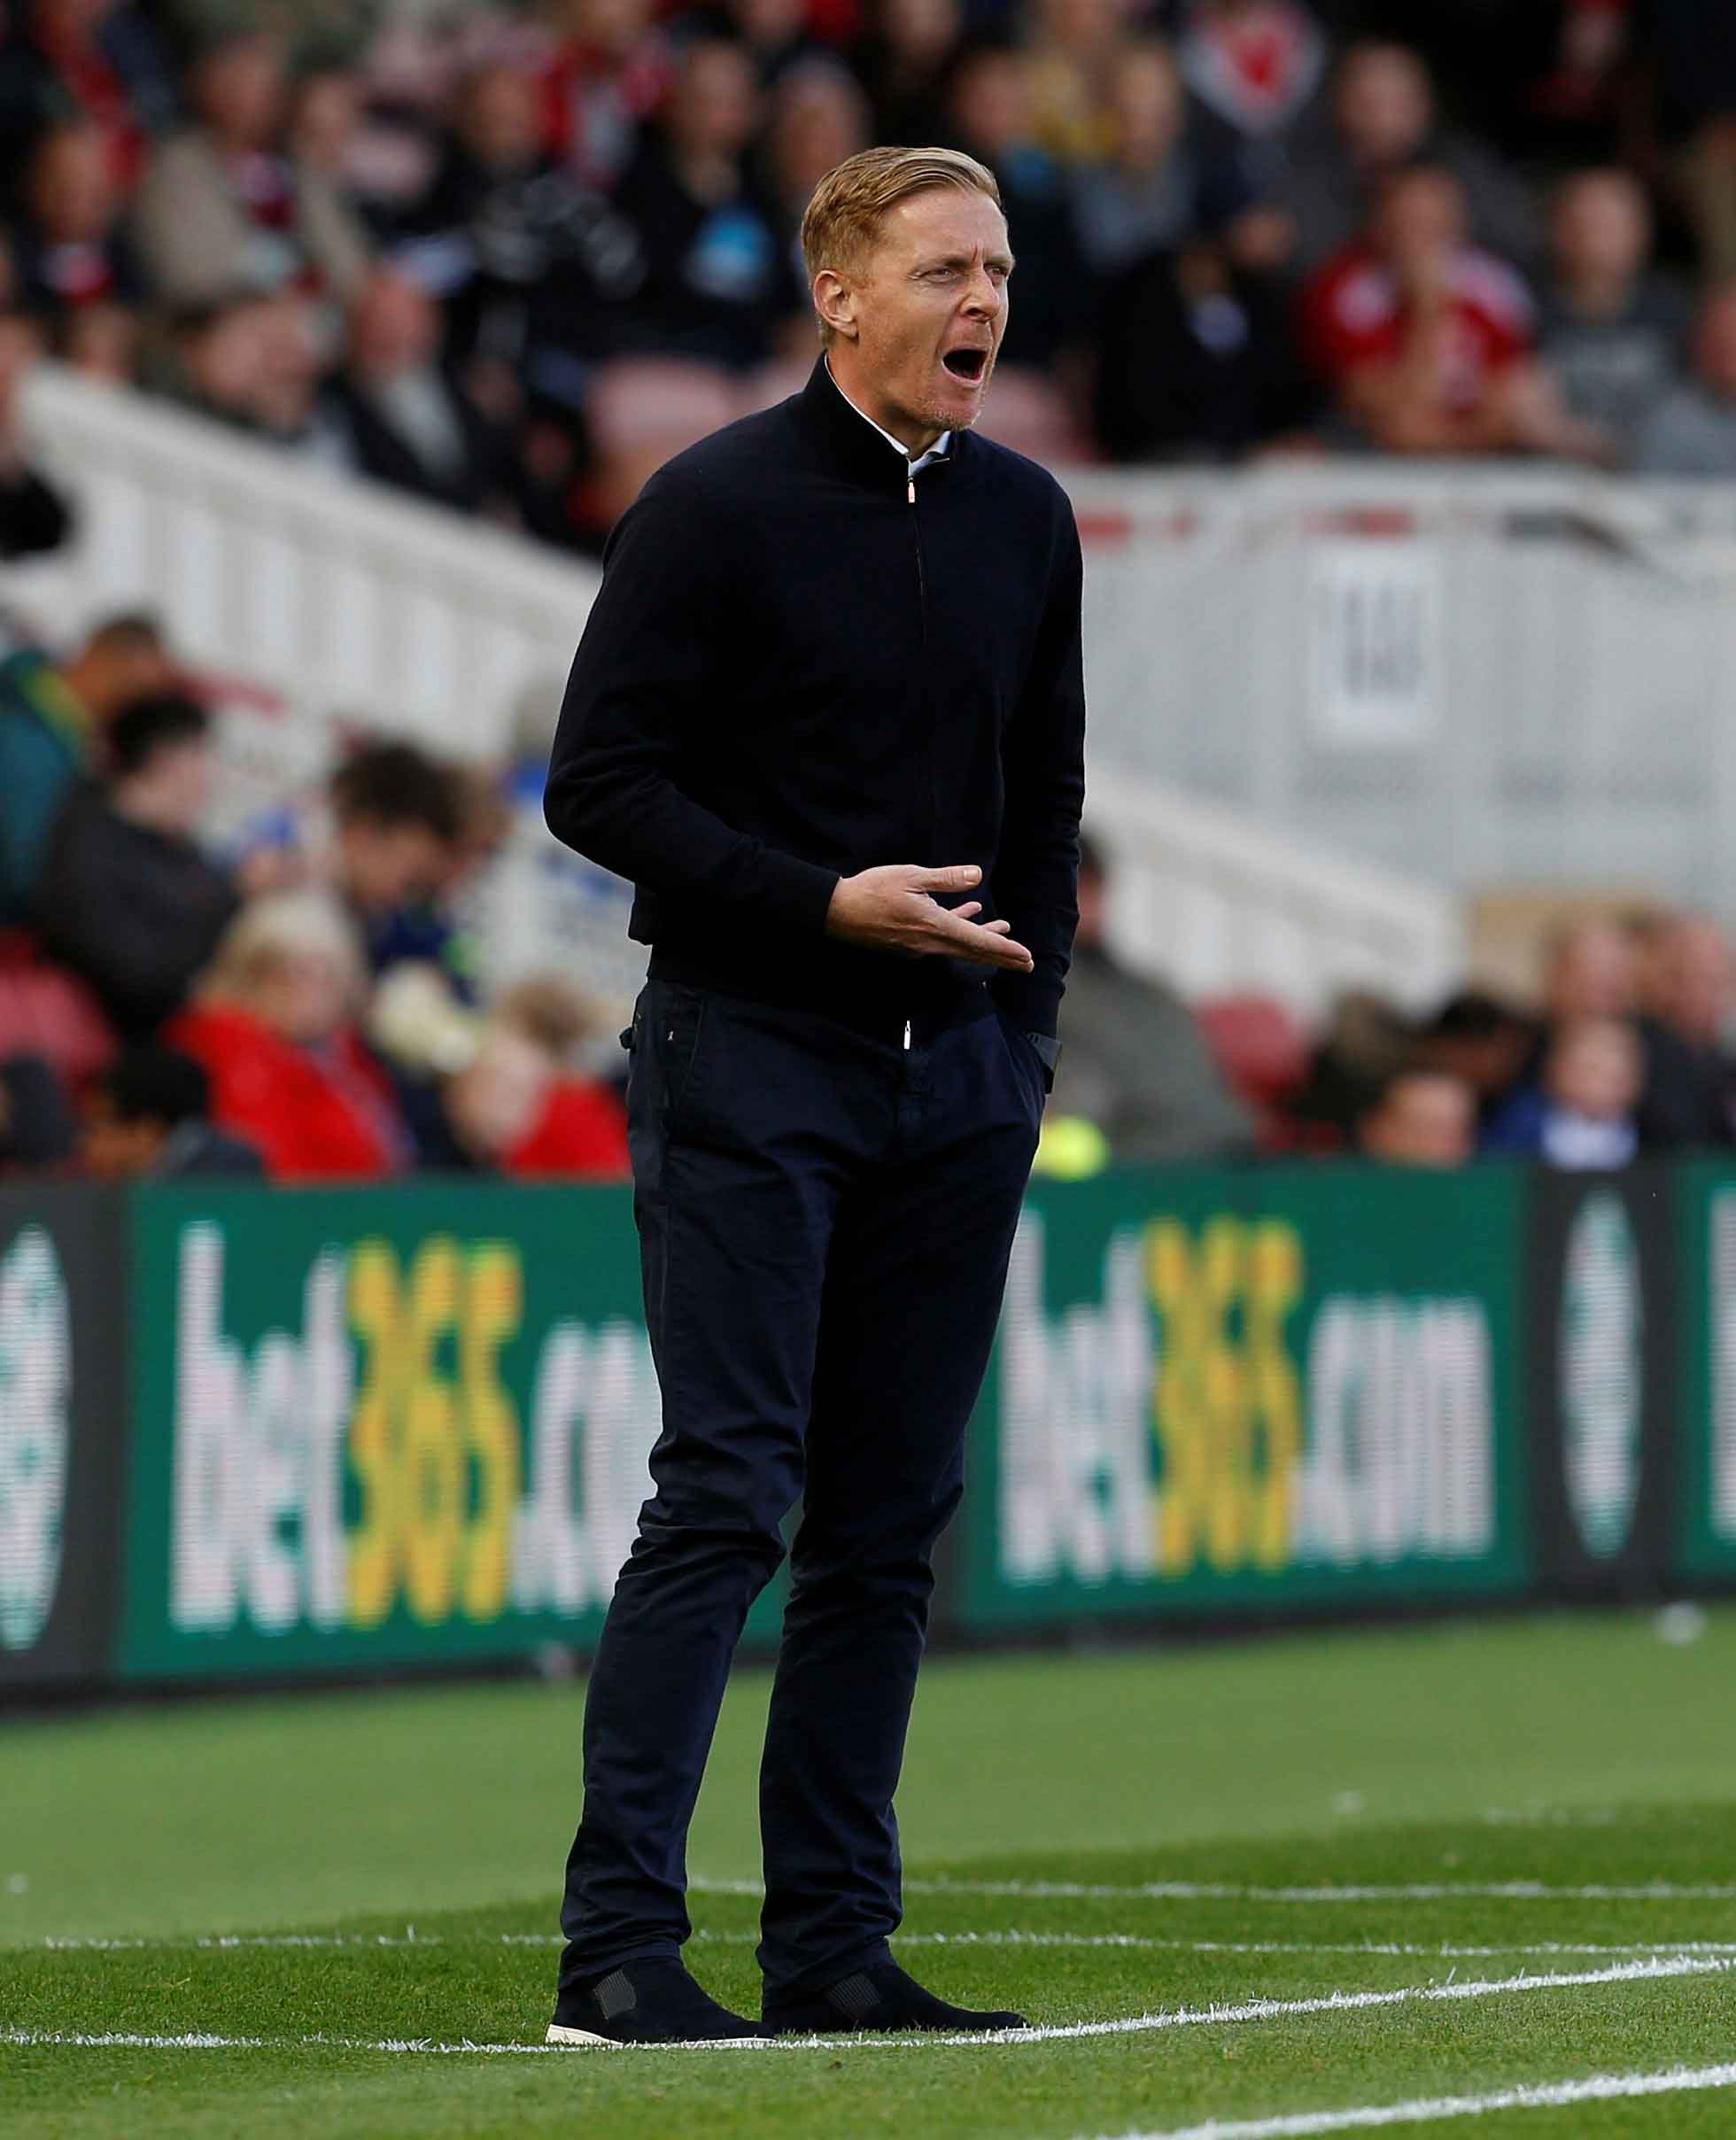 Garry Monk Trying To Be Optimistic While Boro Are Lacking Consecutive Good Performances